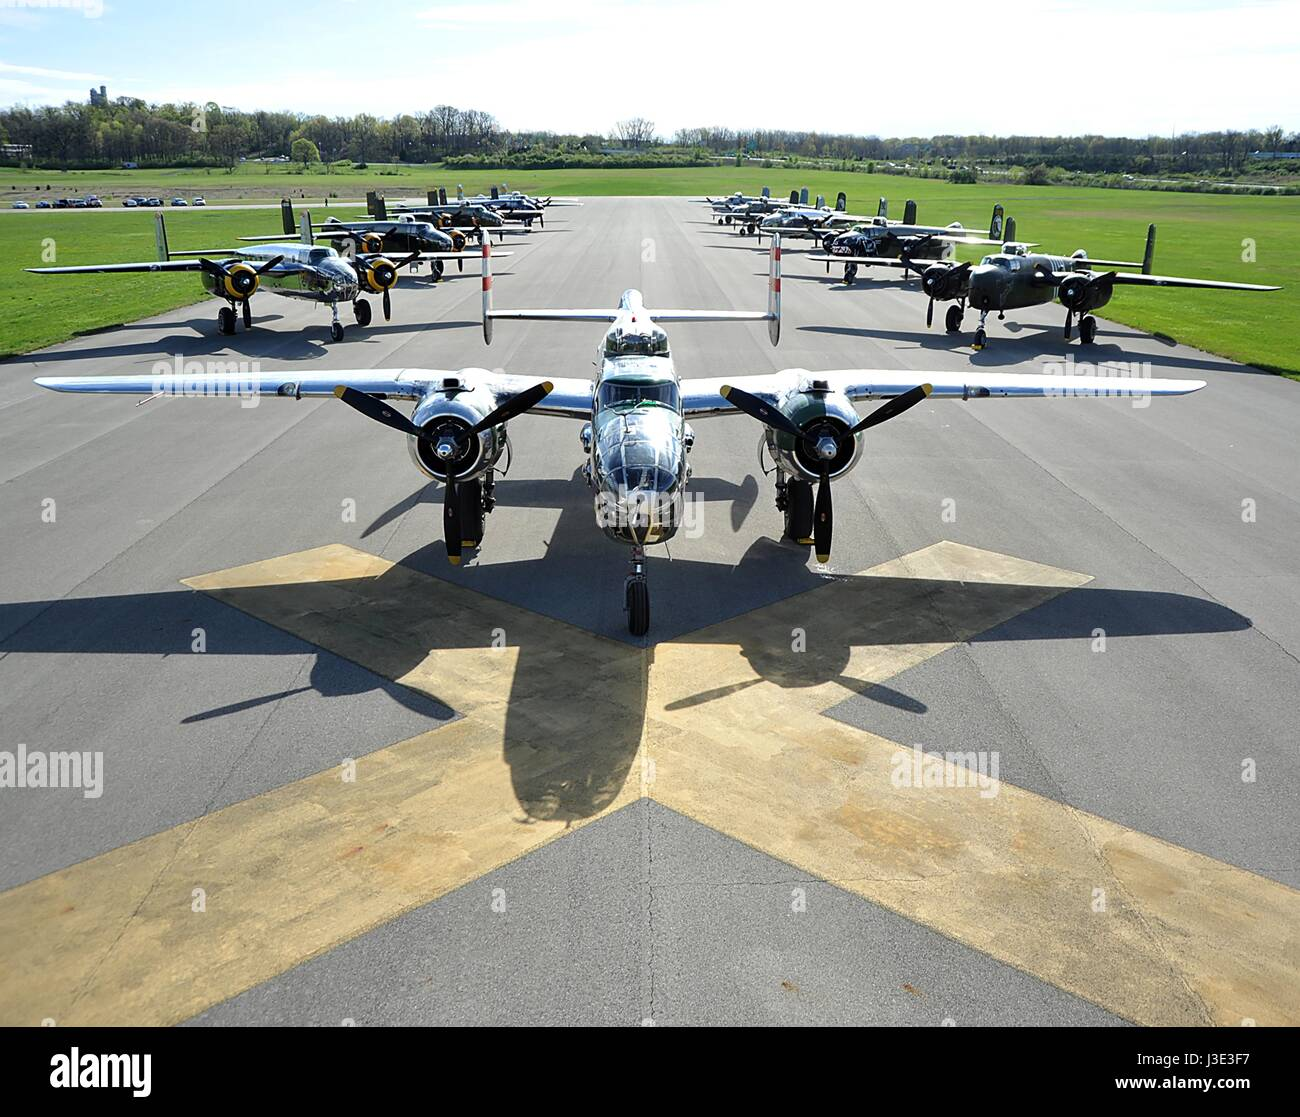 USAF B-25 Mitchell bomber aircraft sit on the runway at the Wright-Patterson Air Force Base National Museum of the - Stock Image